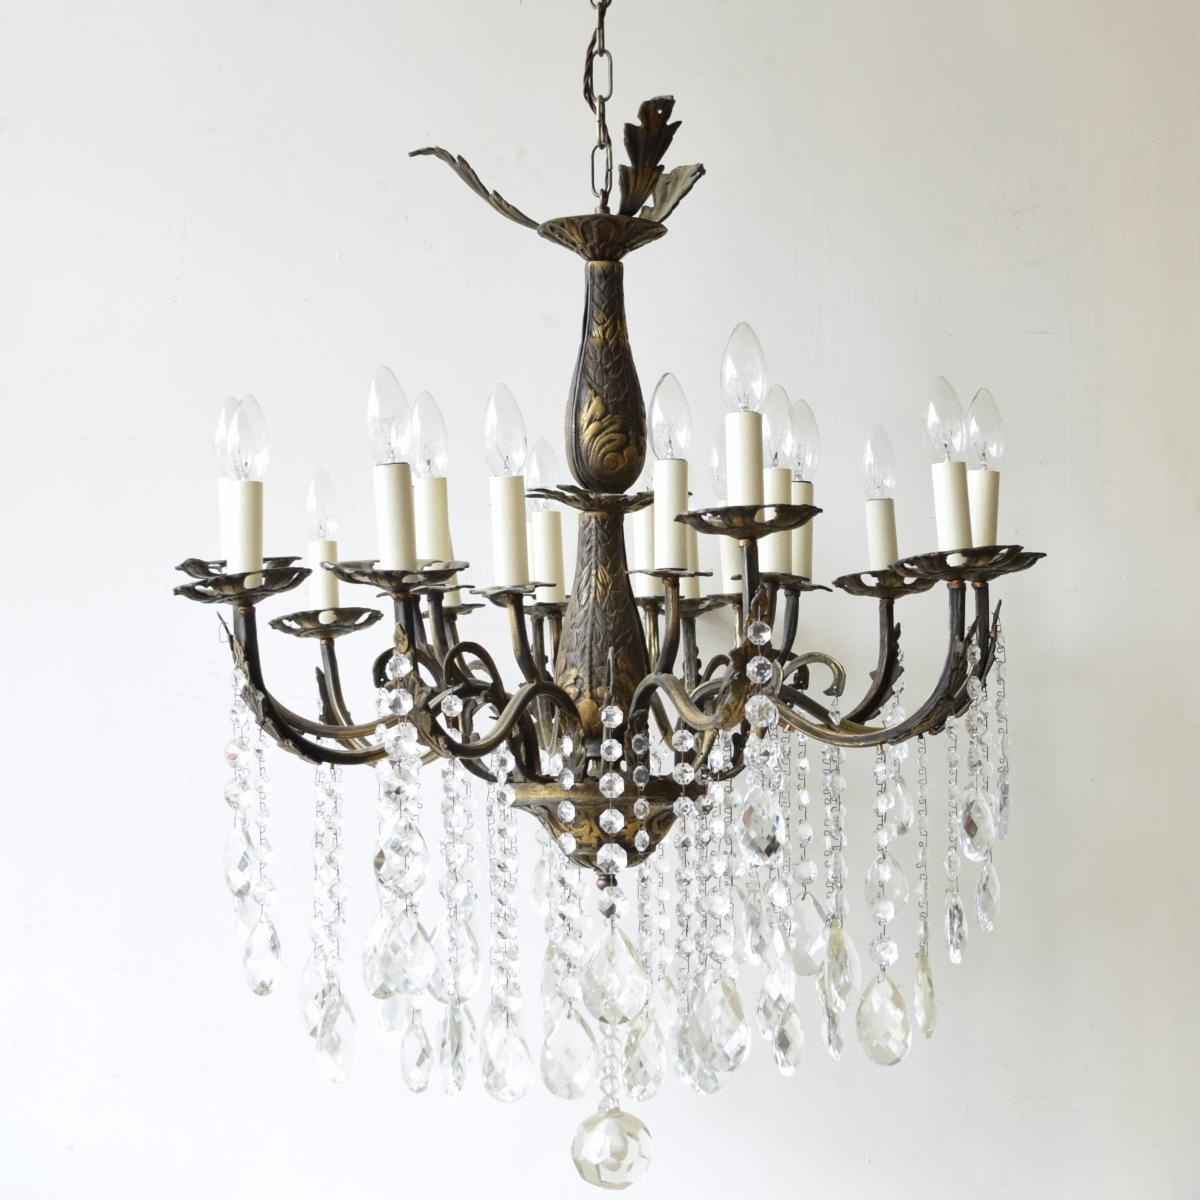 Fashionable Large Vintage French 16 Light Brass Chandelier For Sale At Pamono In Large Brass Chandelier (View 7 of 15)